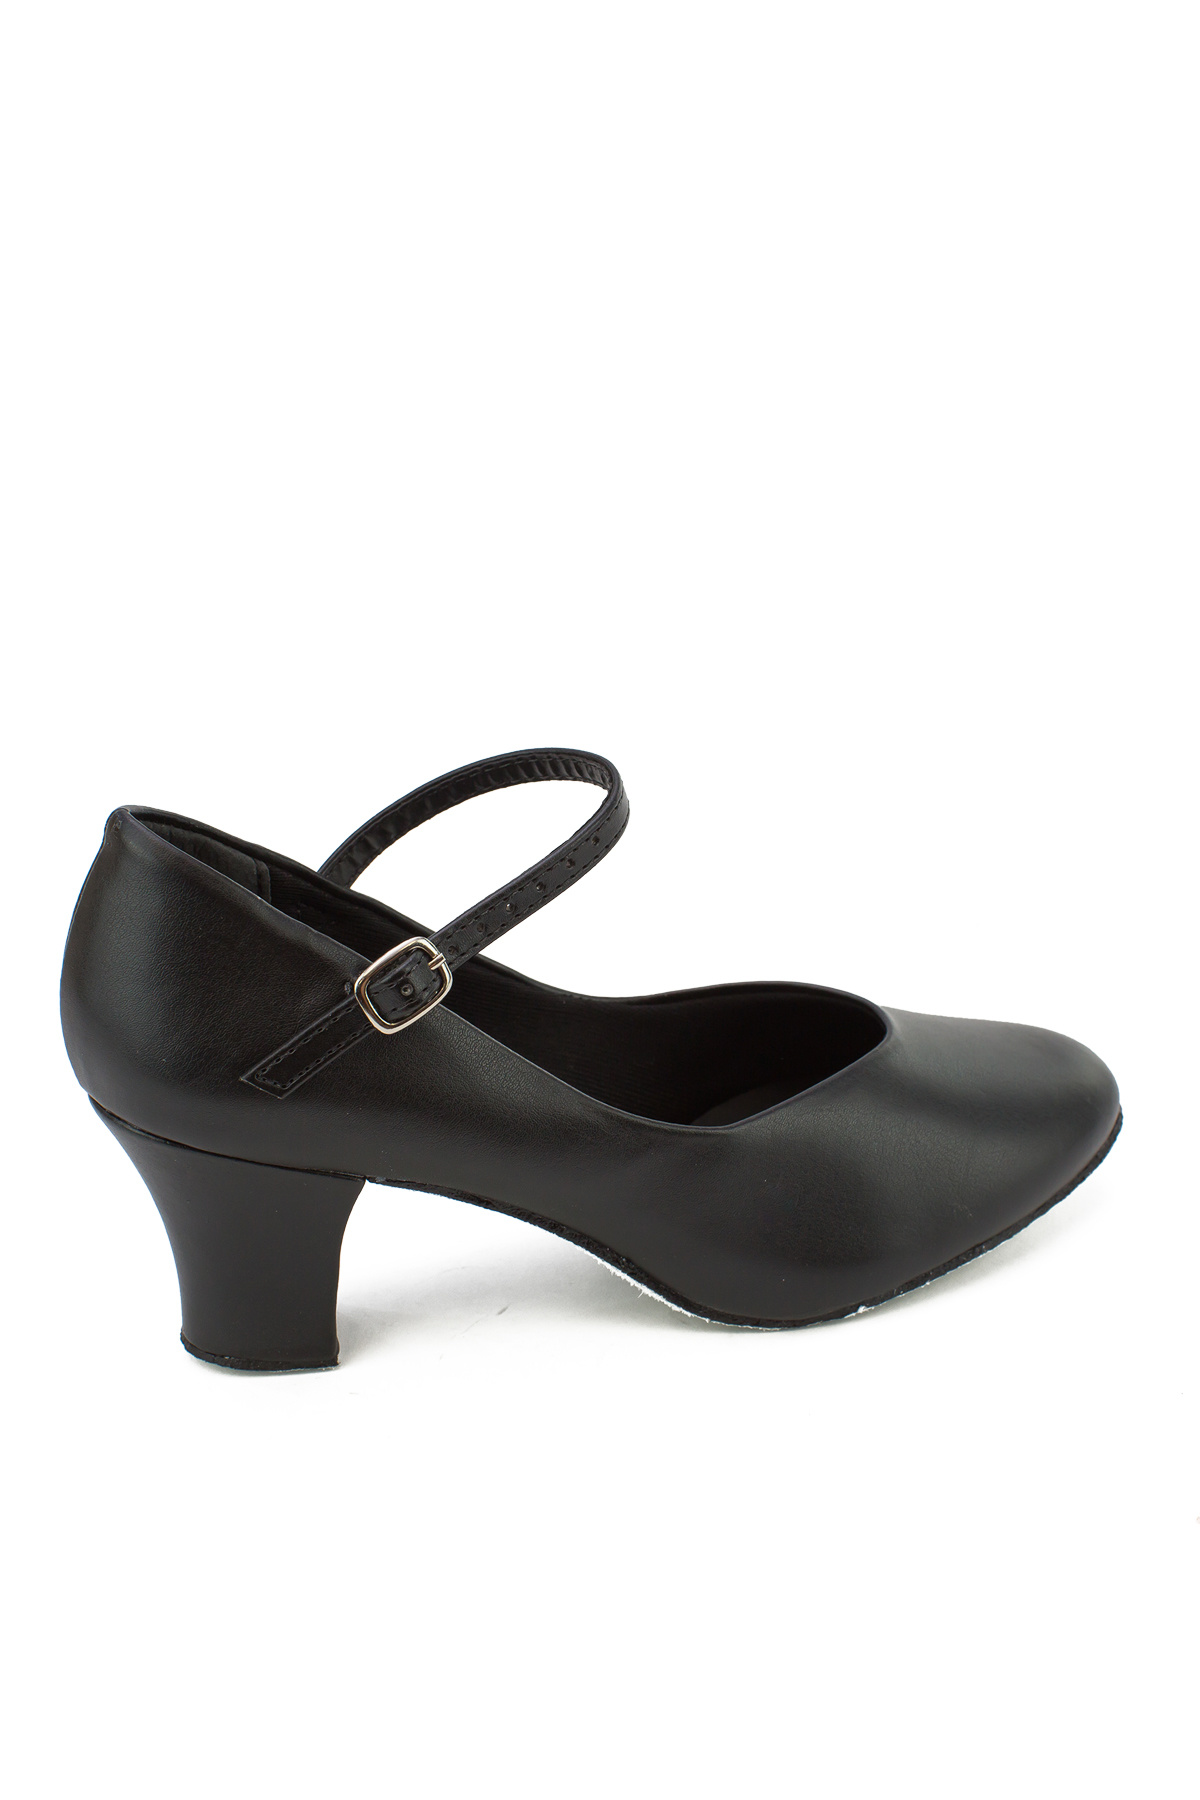 SO DANCA ROBIN CLASSIC 2'' CHARACTER SHOES (CH-792)